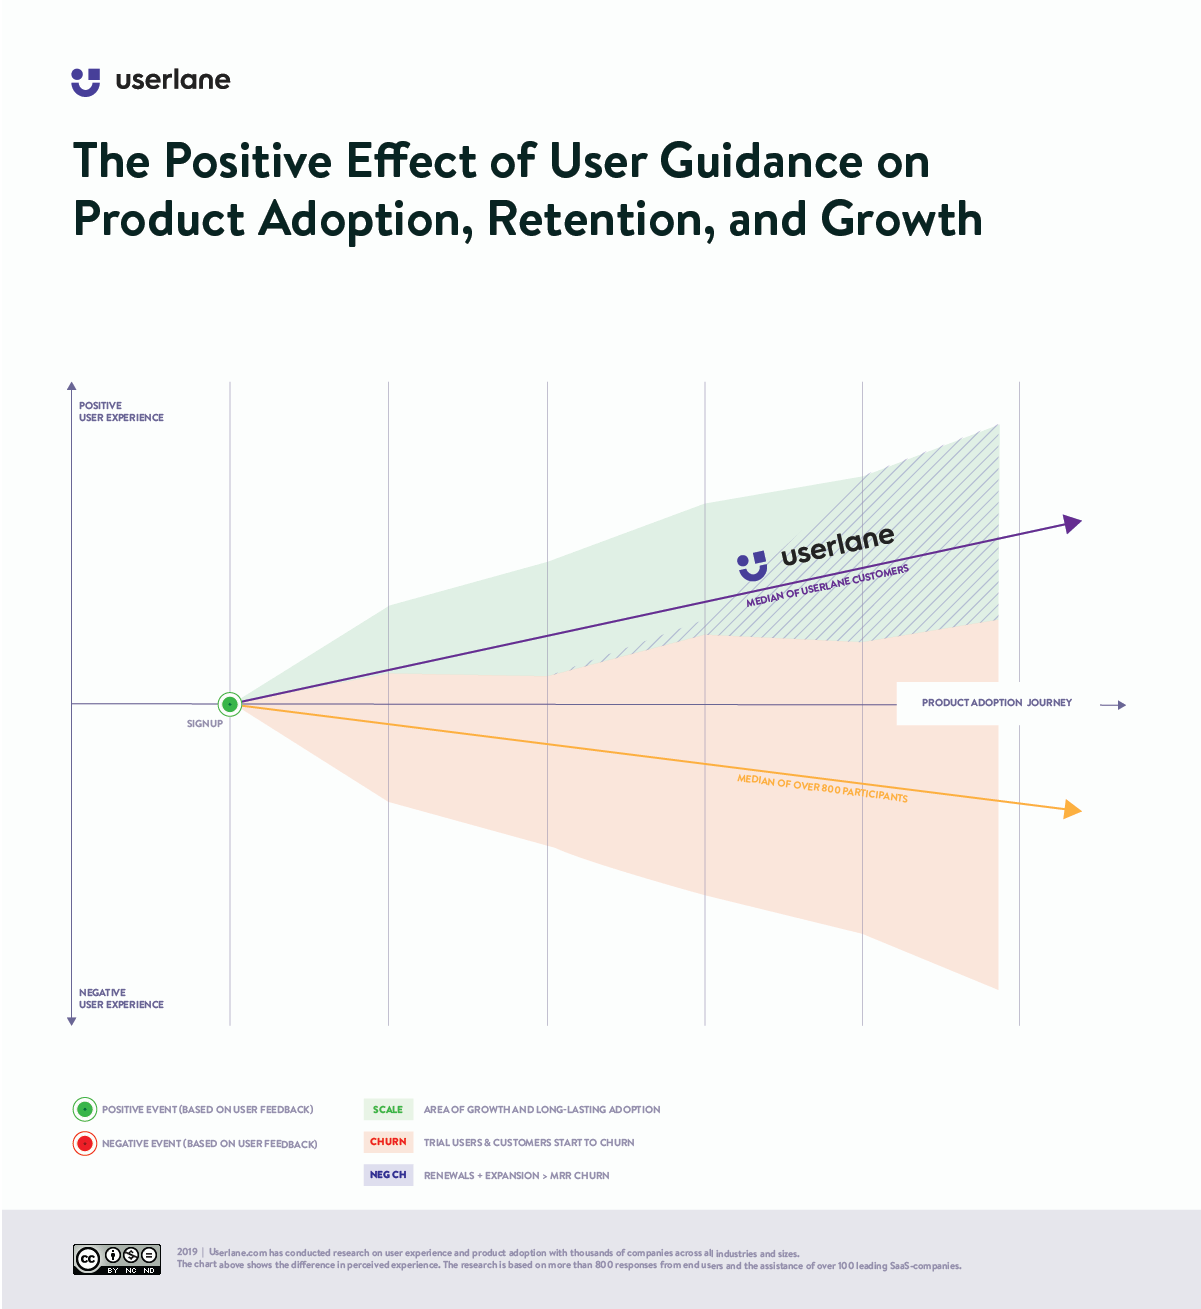 Chart: the positive effect of interactive user guidance on the product adoption journey